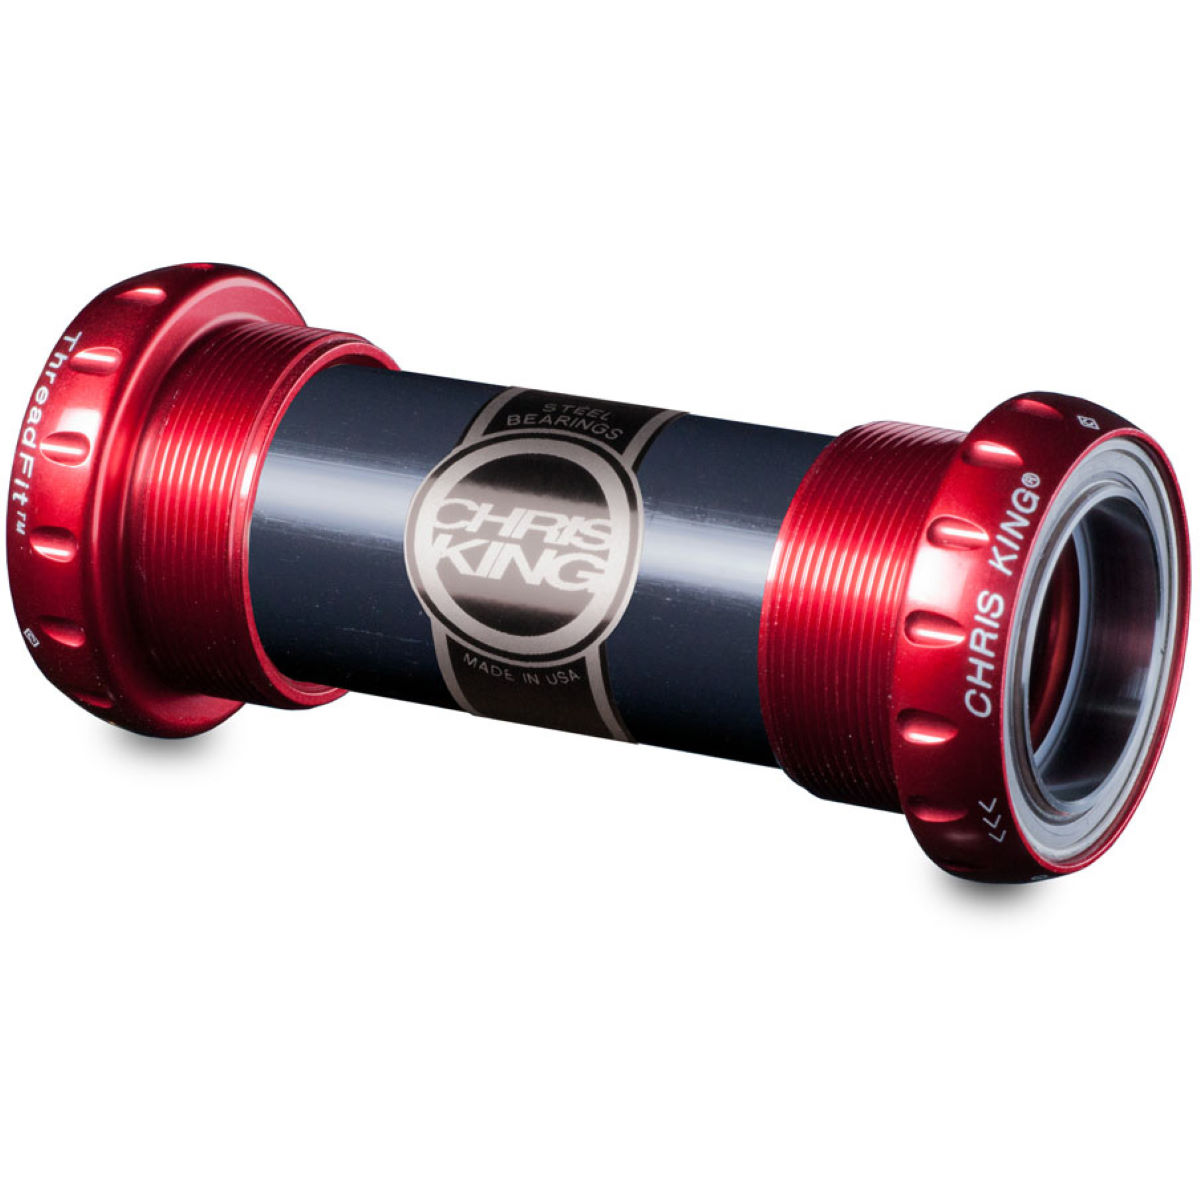 Chris King Threadfit 24mm Bottom Bracket - Pedalieres